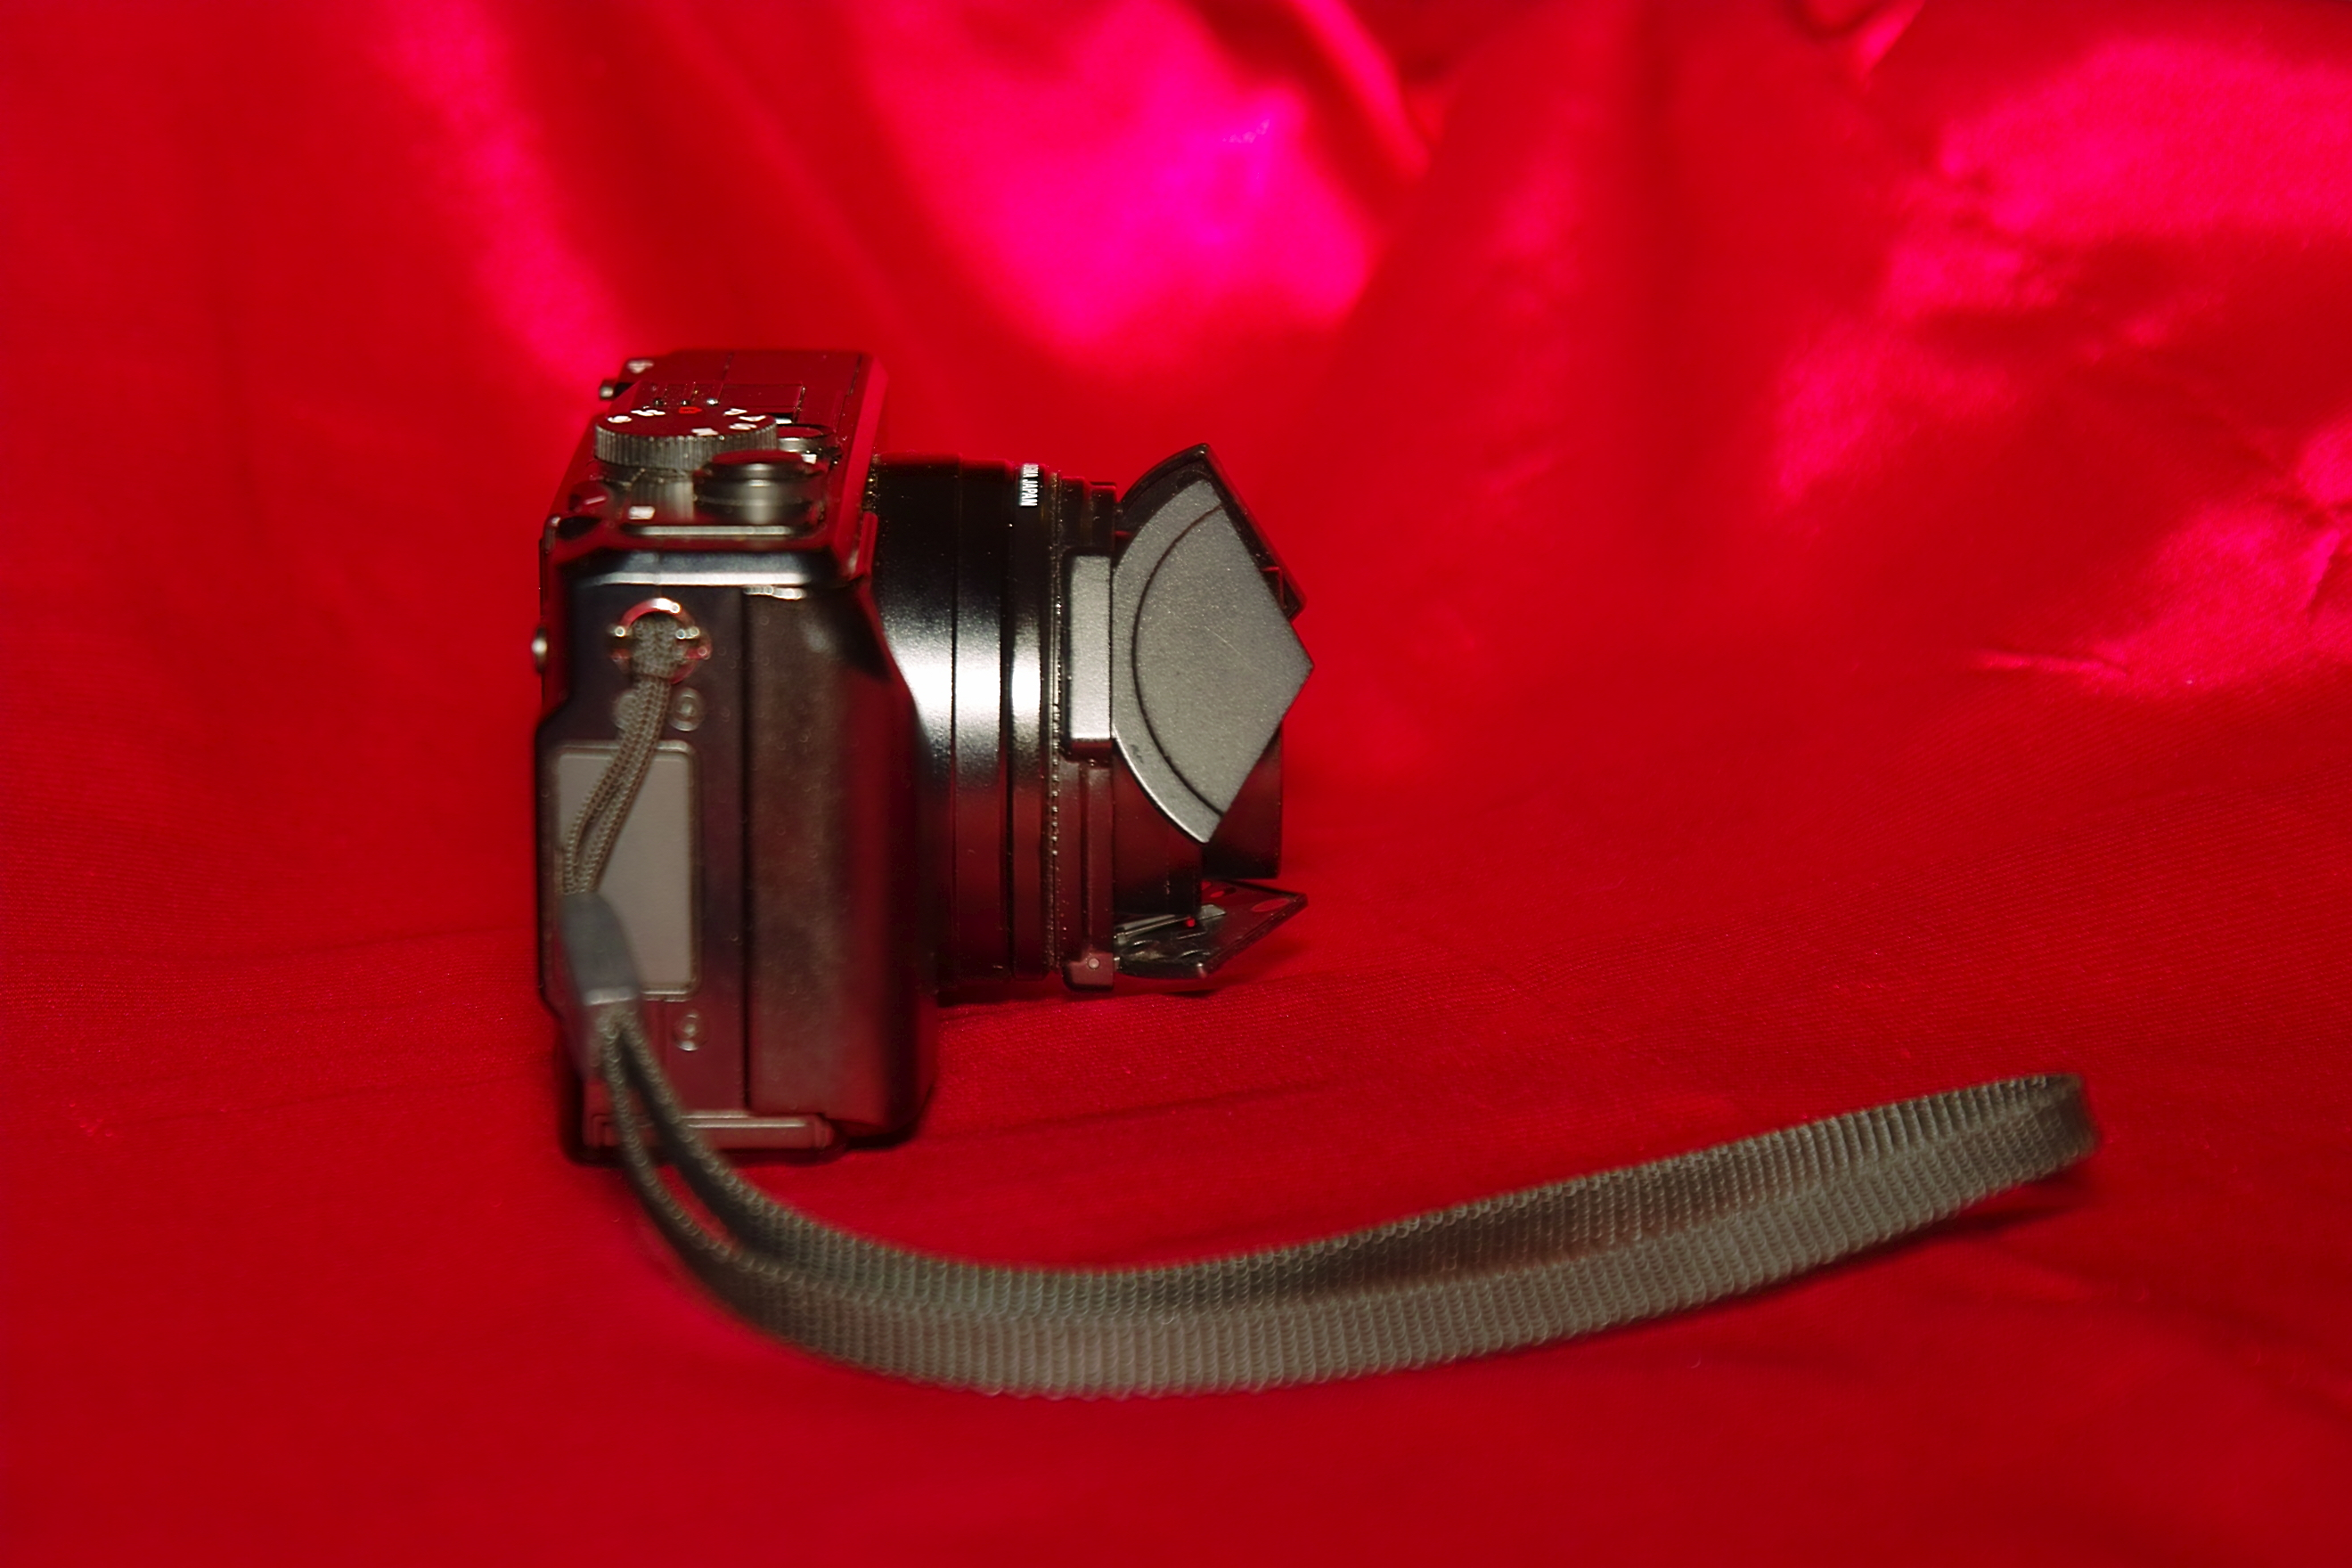 Sigma DP1 with LC1 Auto Lens Cap and Franiec grip